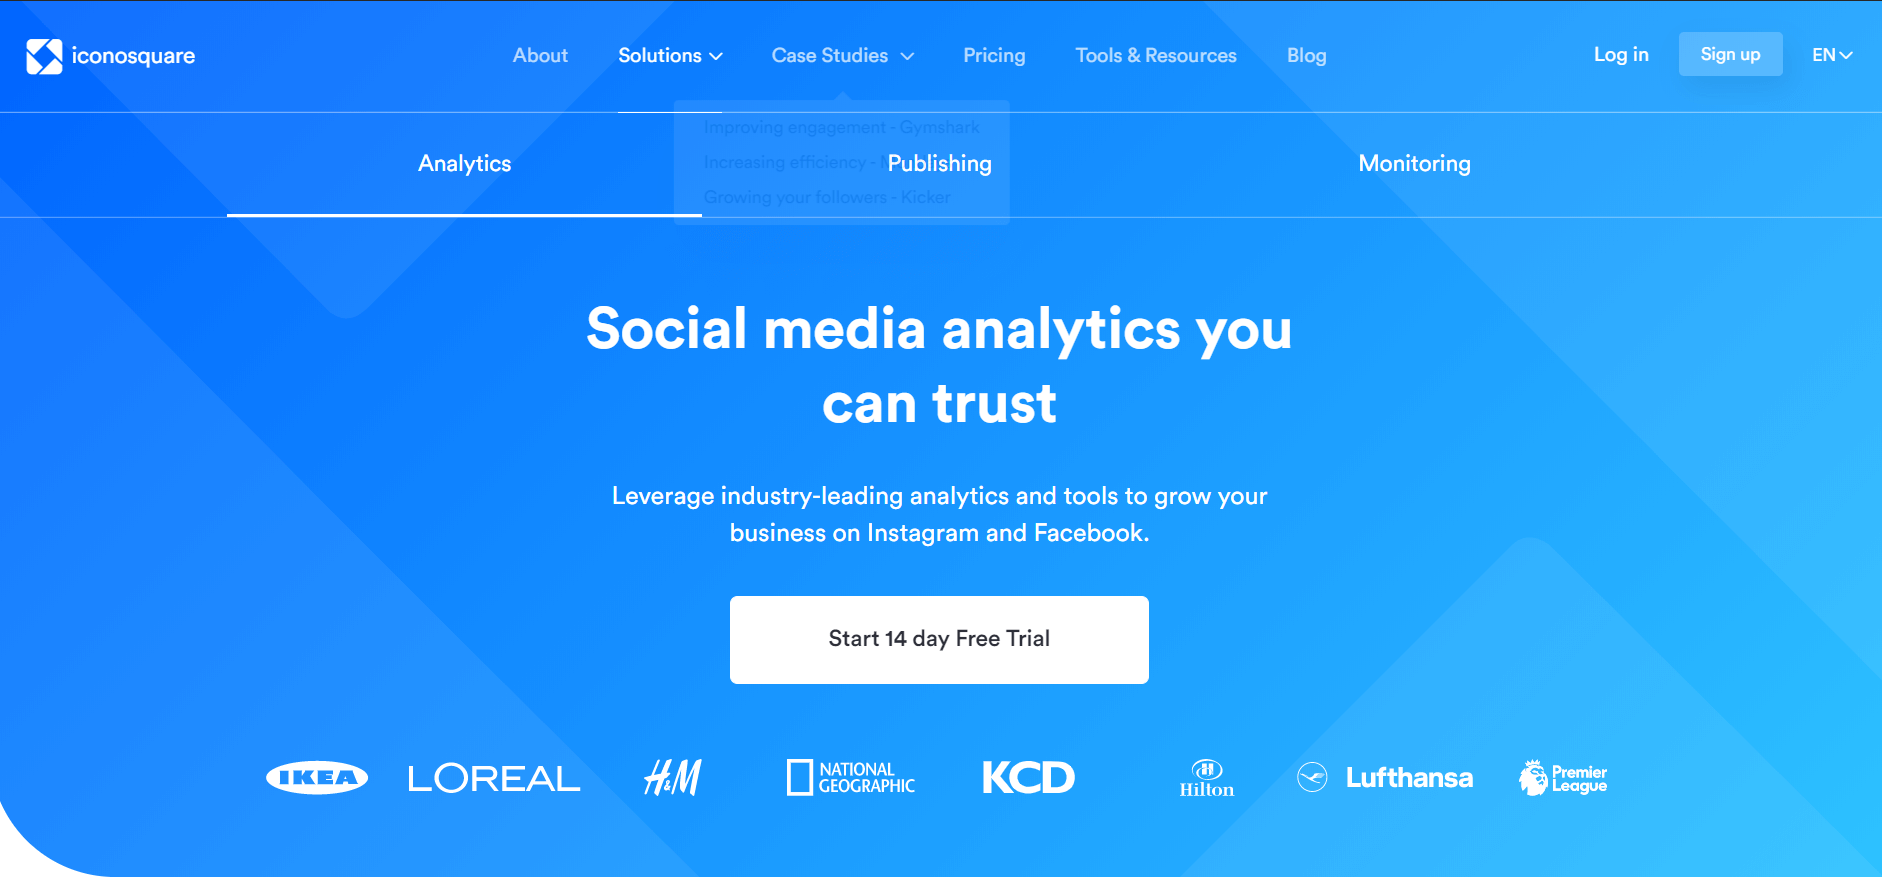 iconosquare Instagram Analytics Tool1